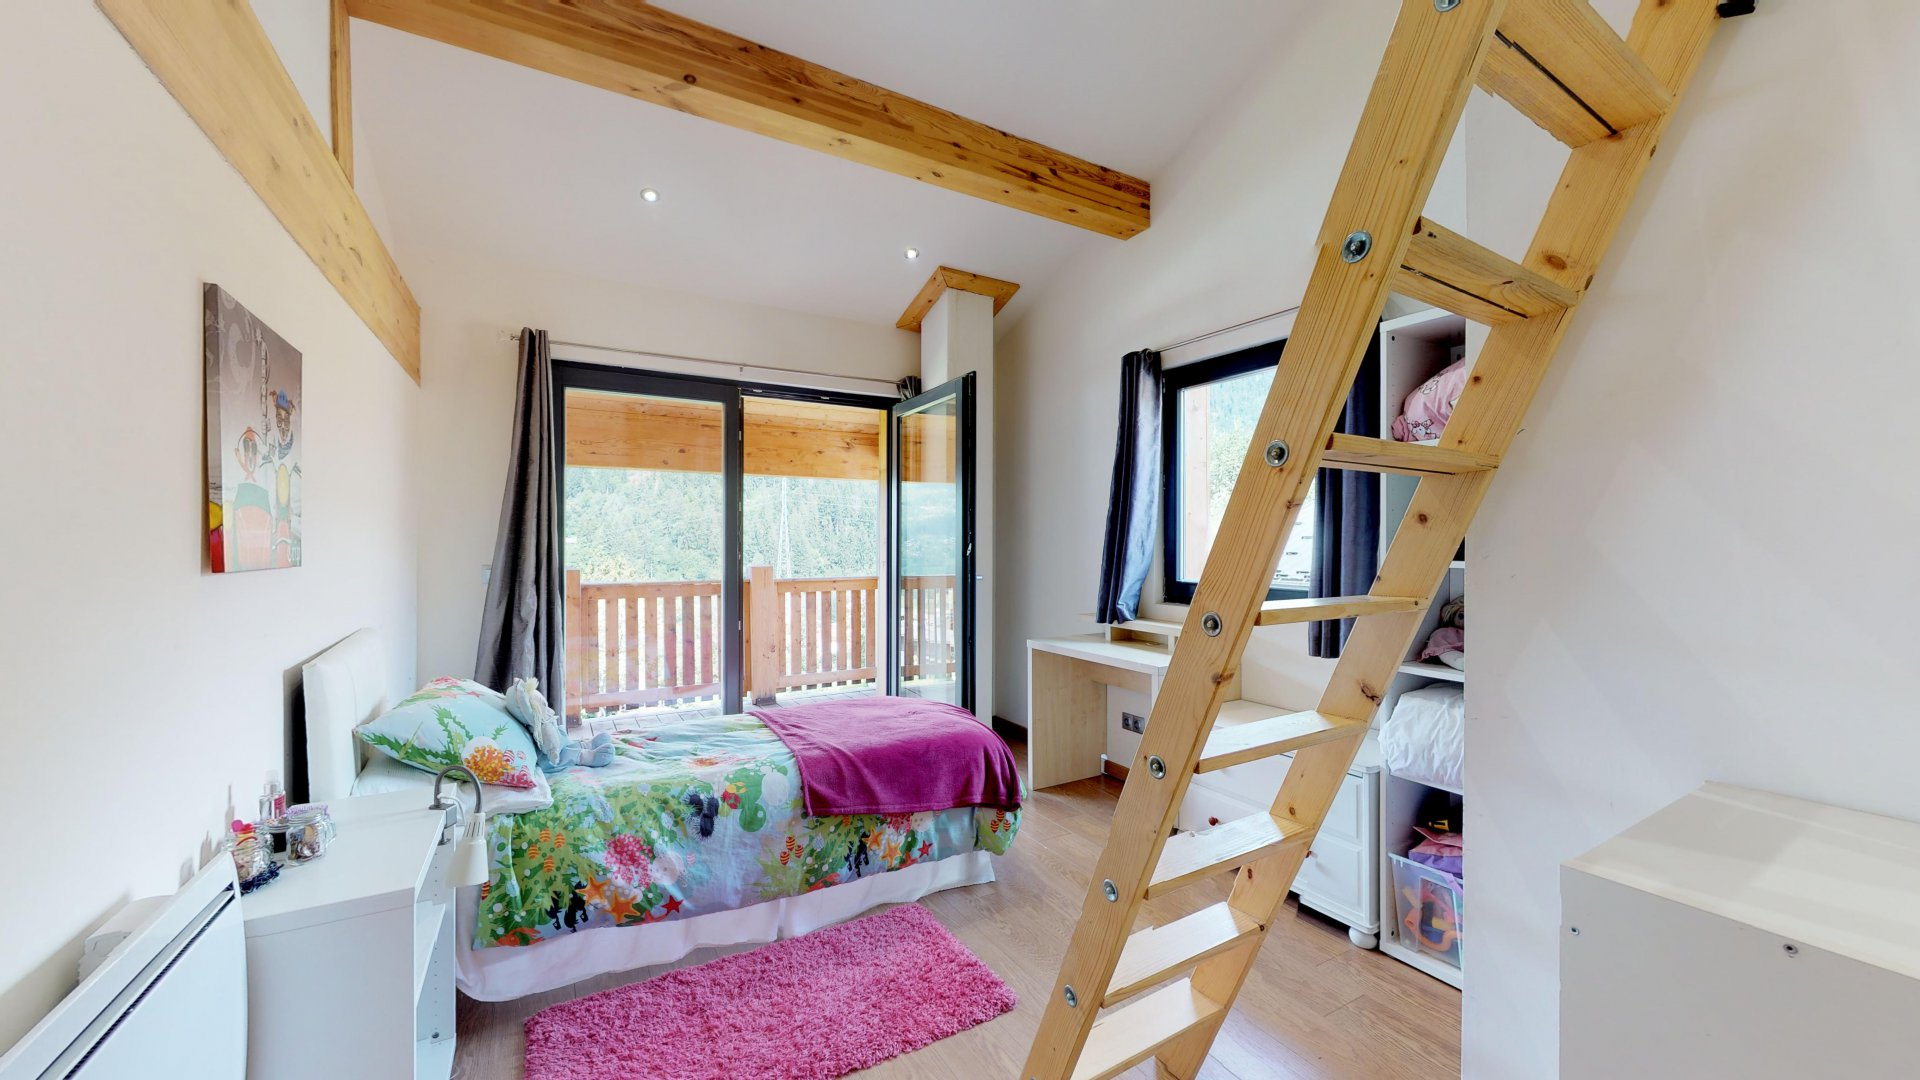 Second bedroom under the eaves with mezzanine, ideal for a child